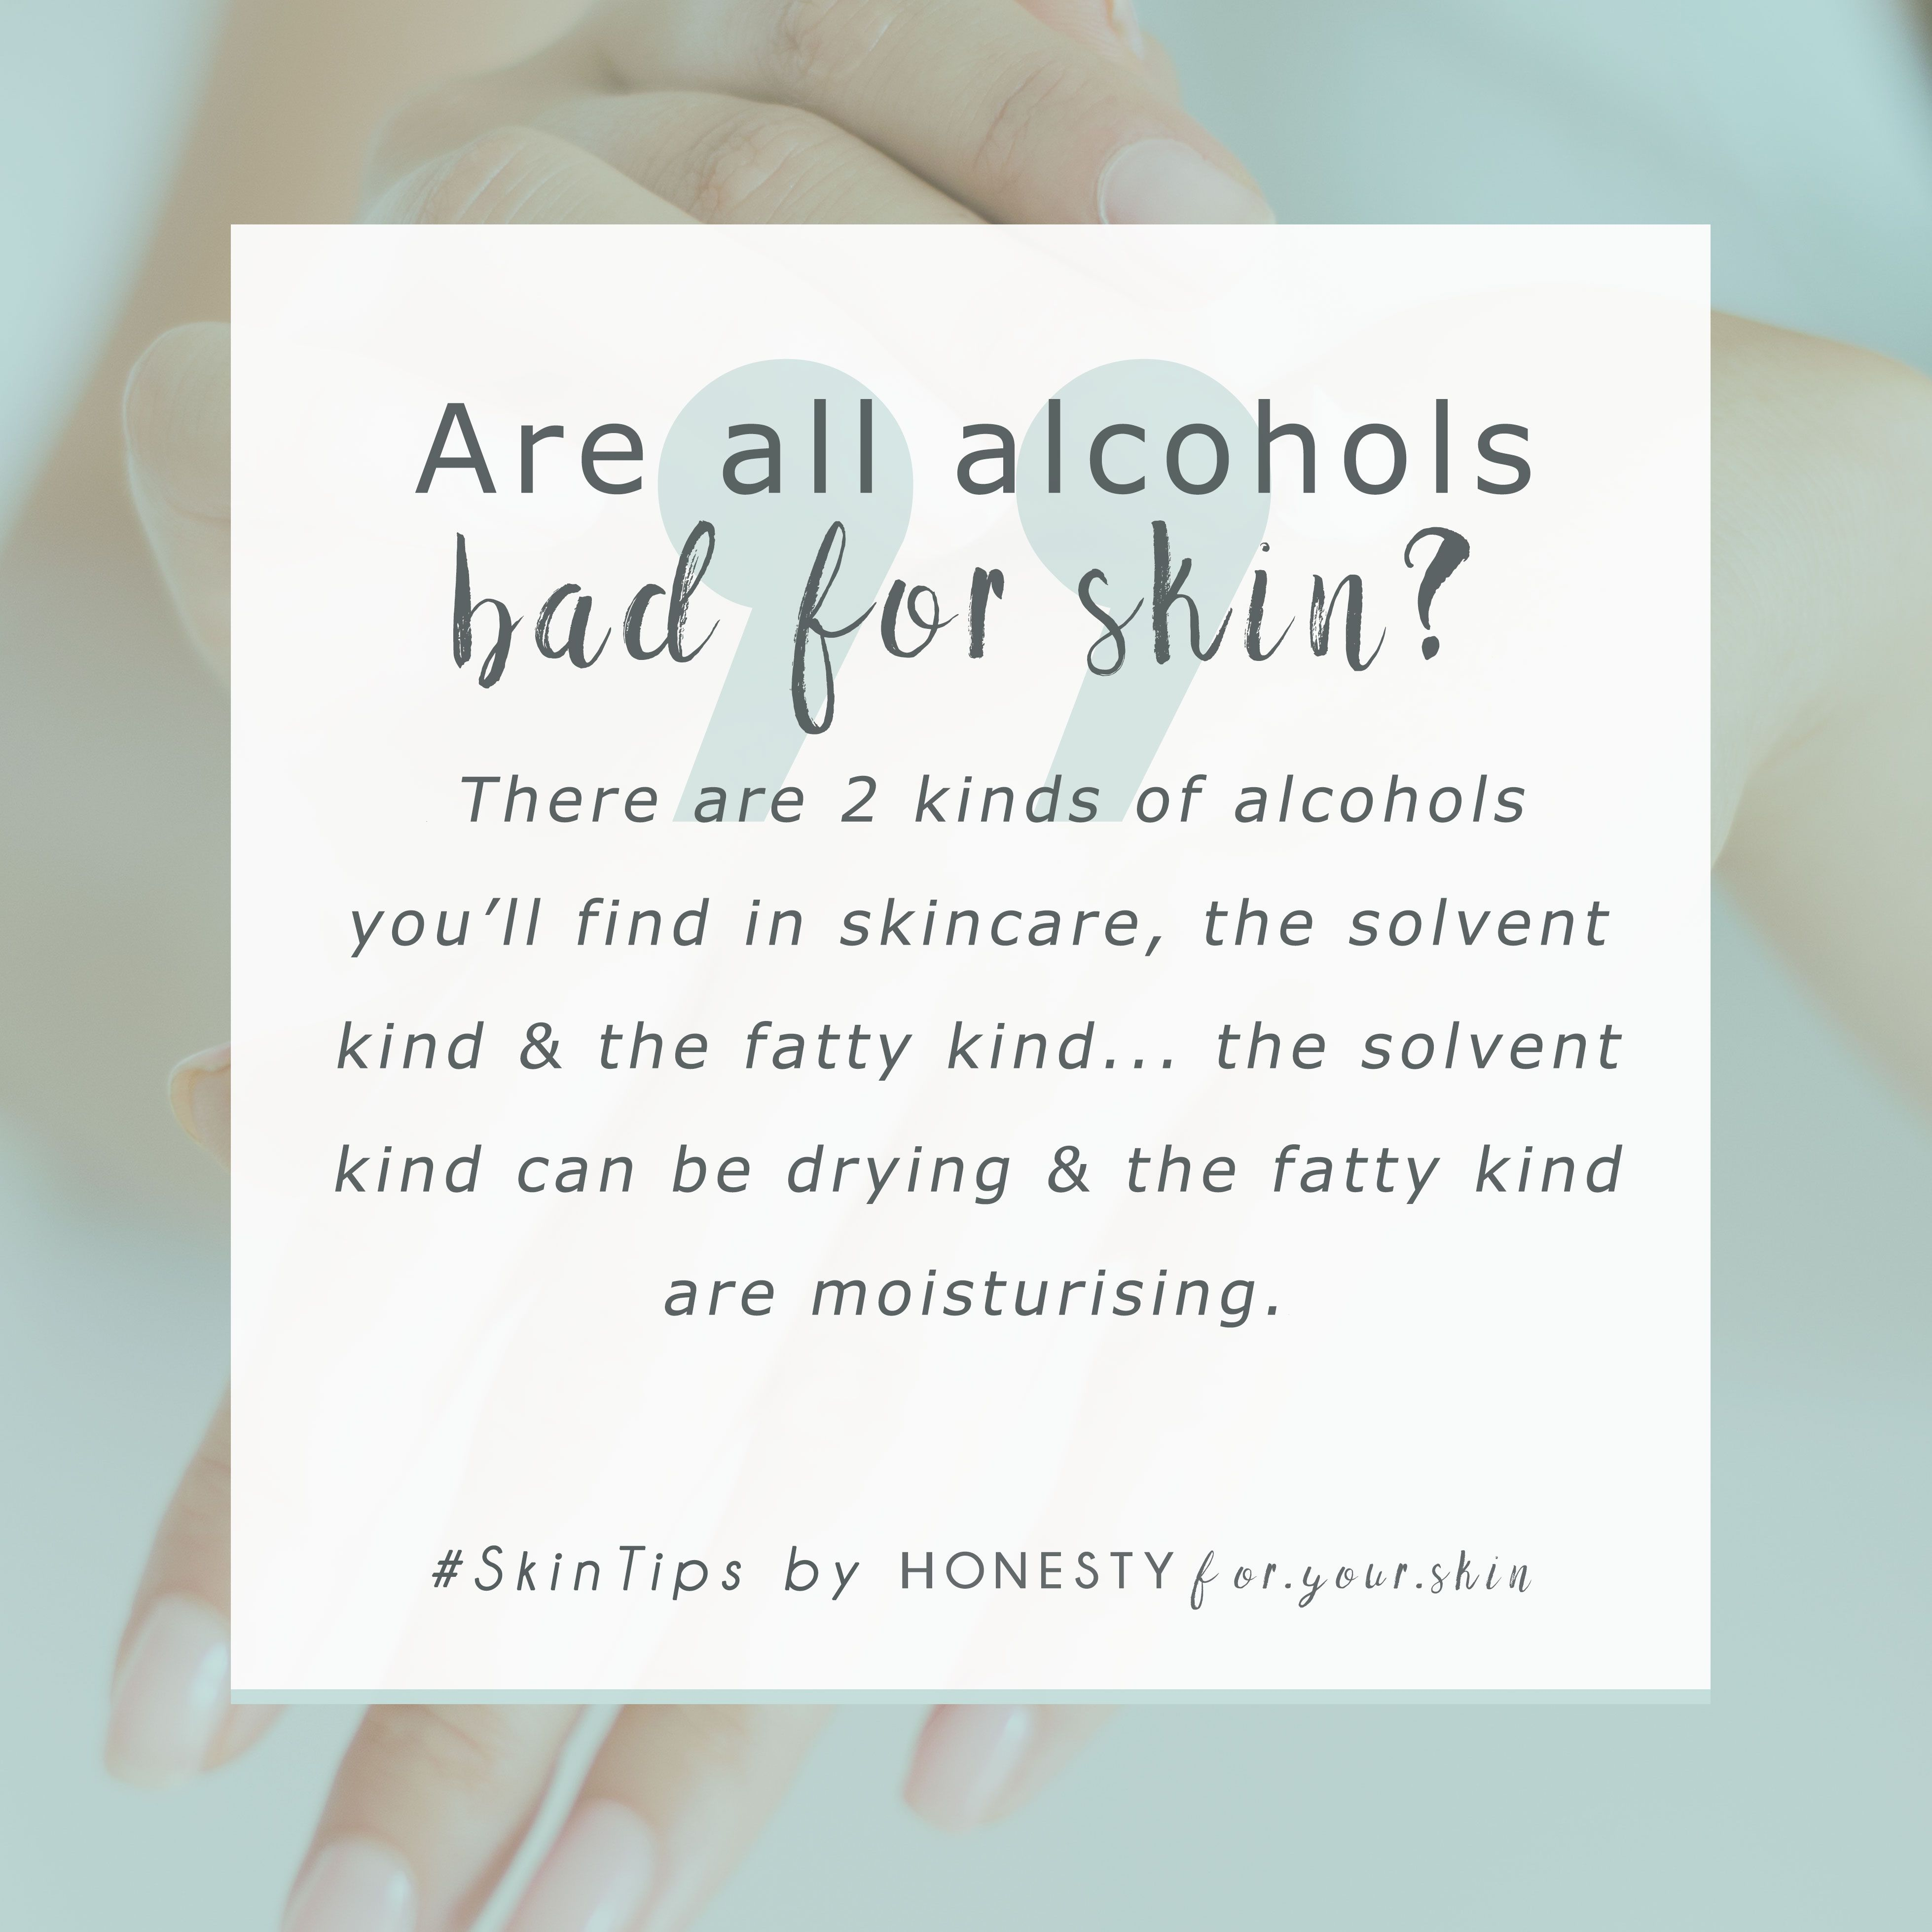 Is Alcohol in Skincare Bad For Your Skin? What Does